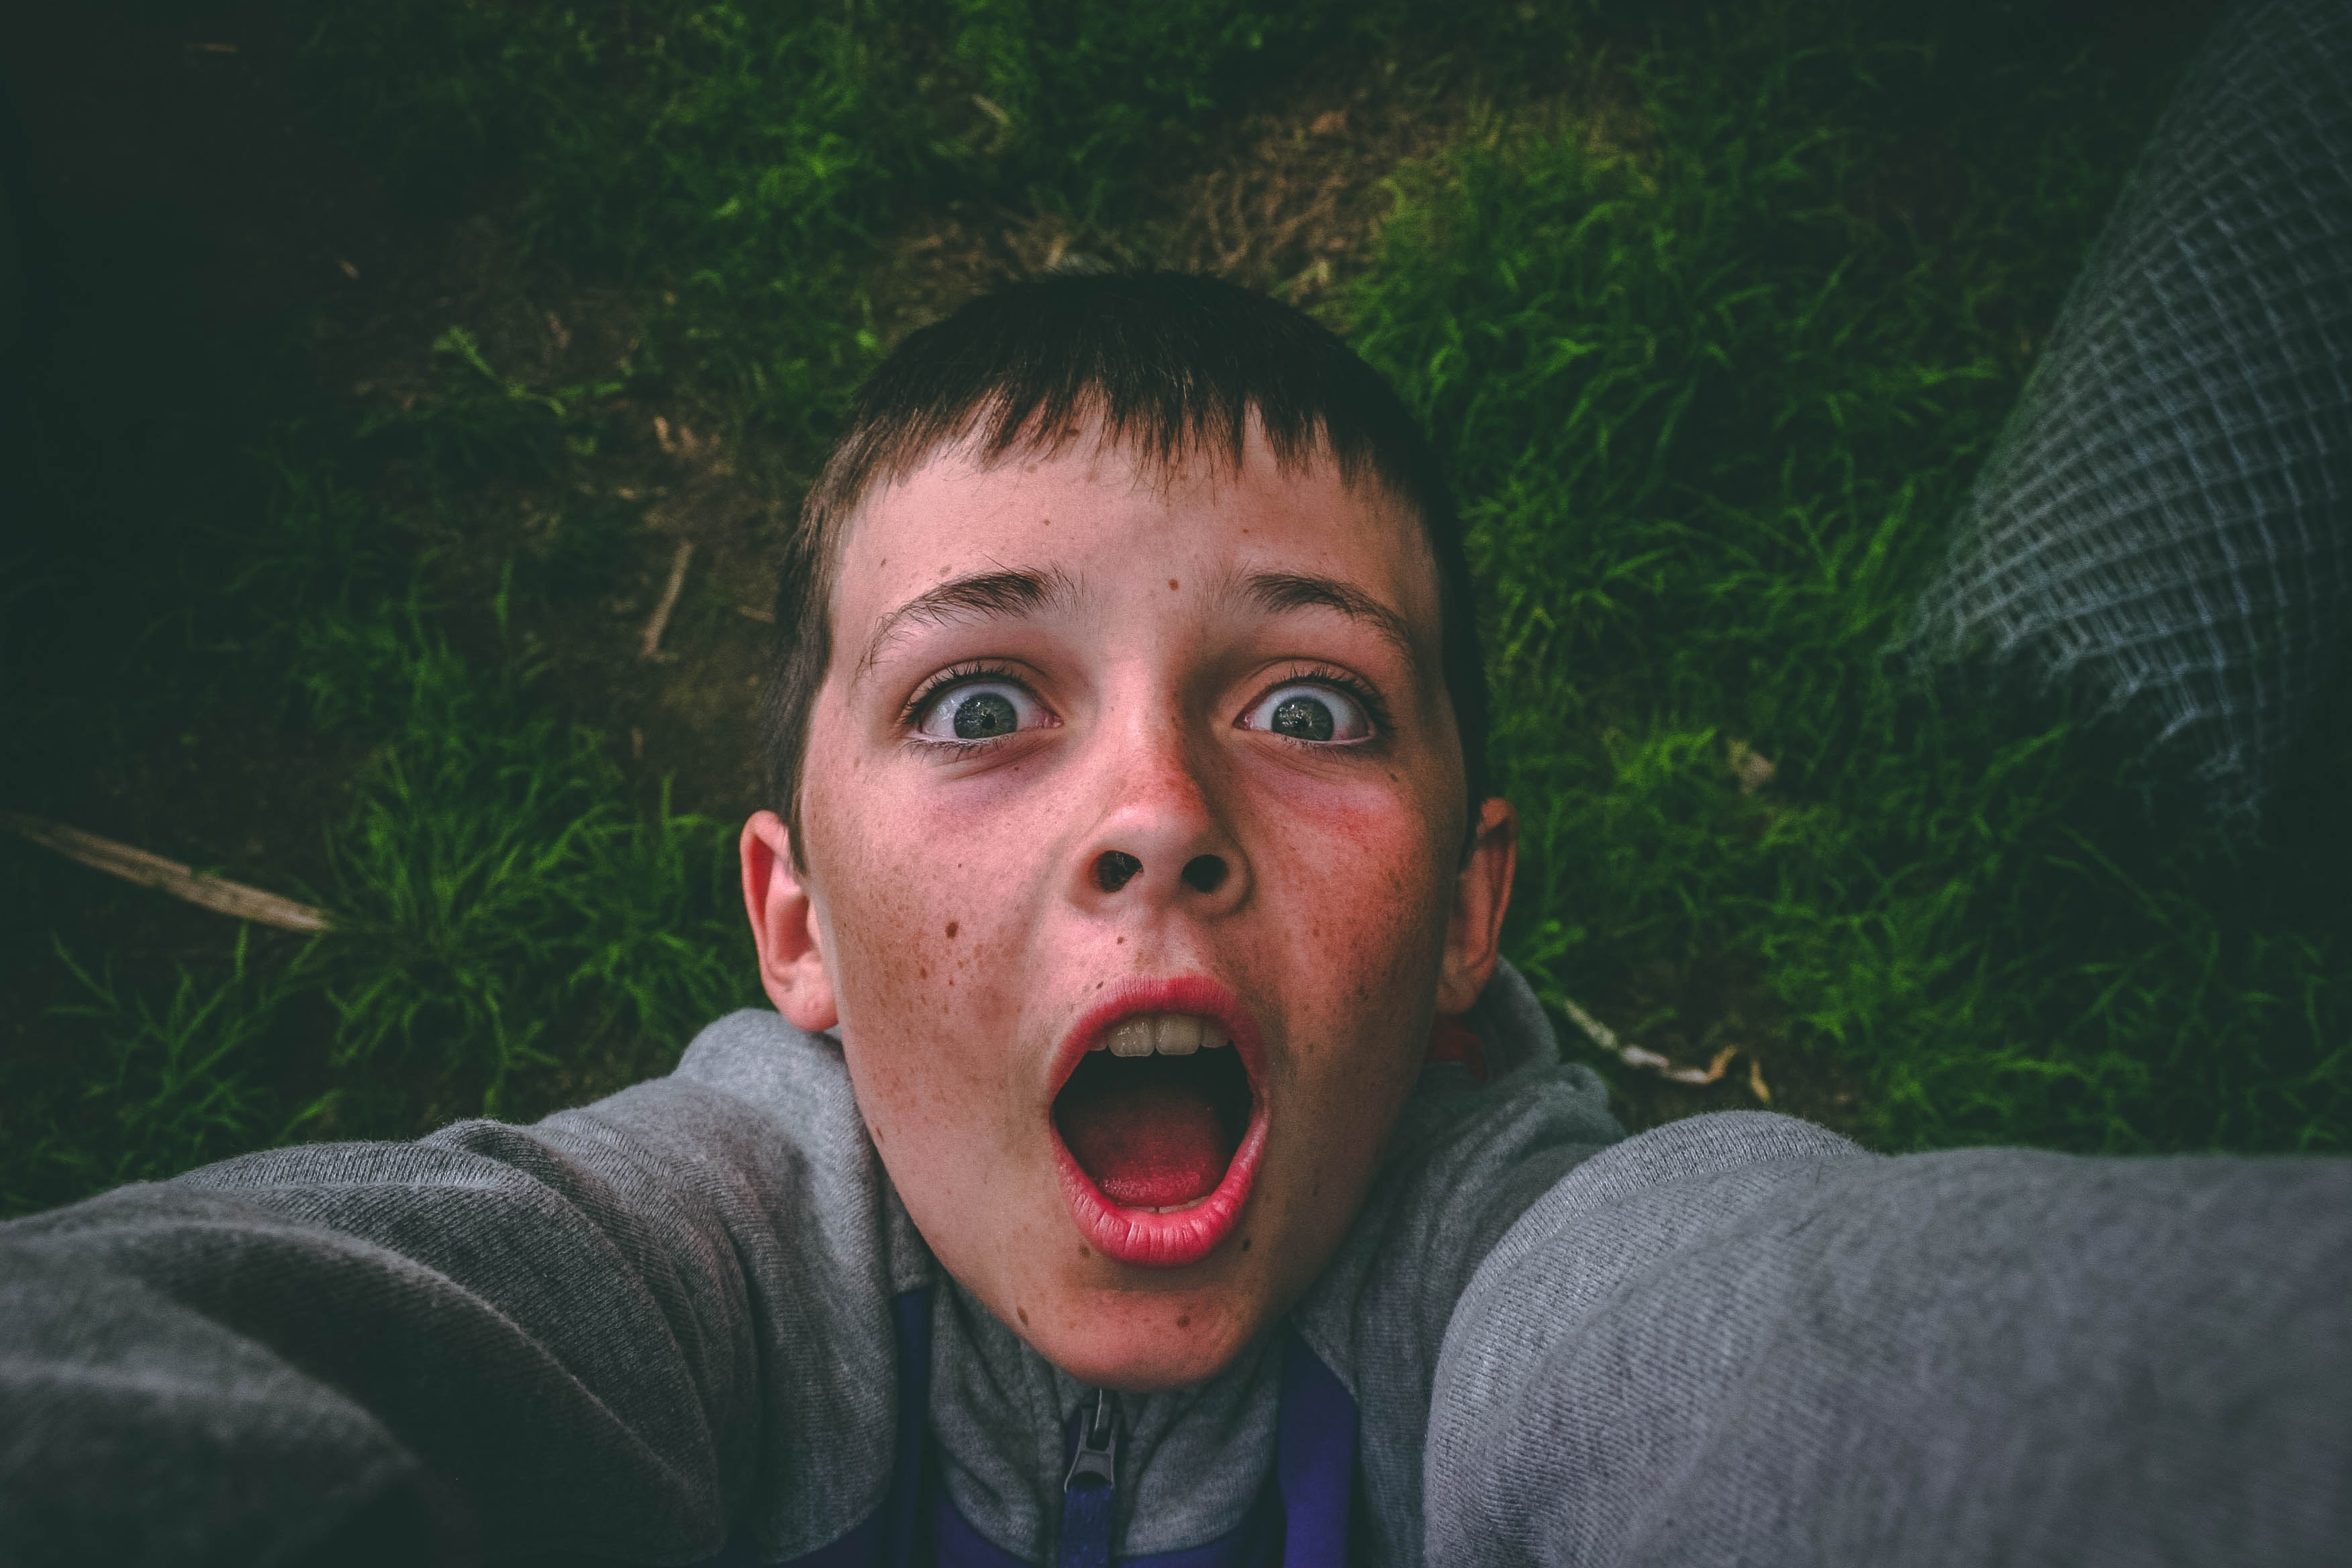 Opened mouth black haired boy in gray full-zip jacket standing on grass field taking selfie photo